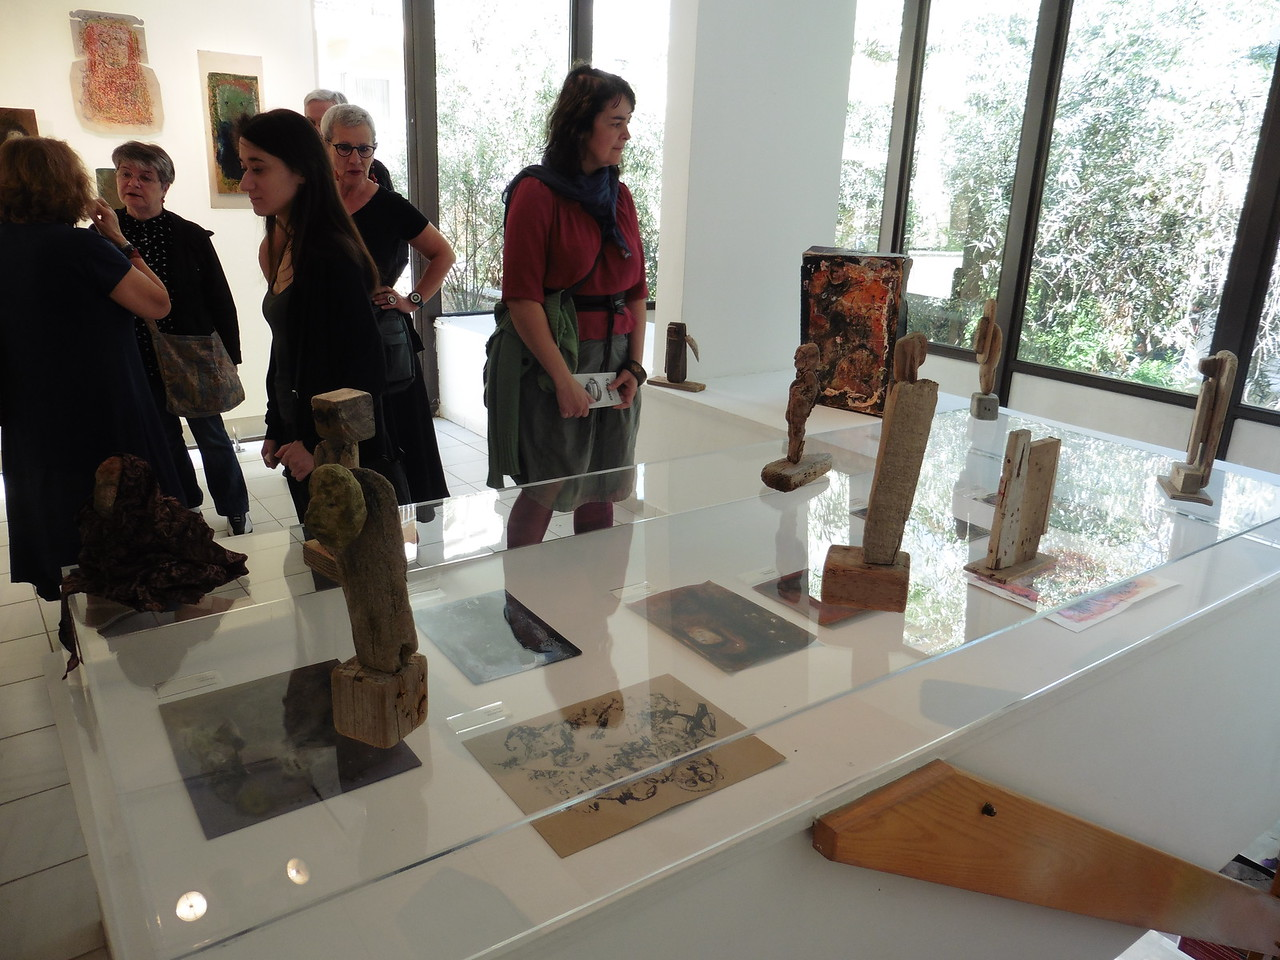 Exposition in the Gounaropulos Museum - Athens - Spring 2017